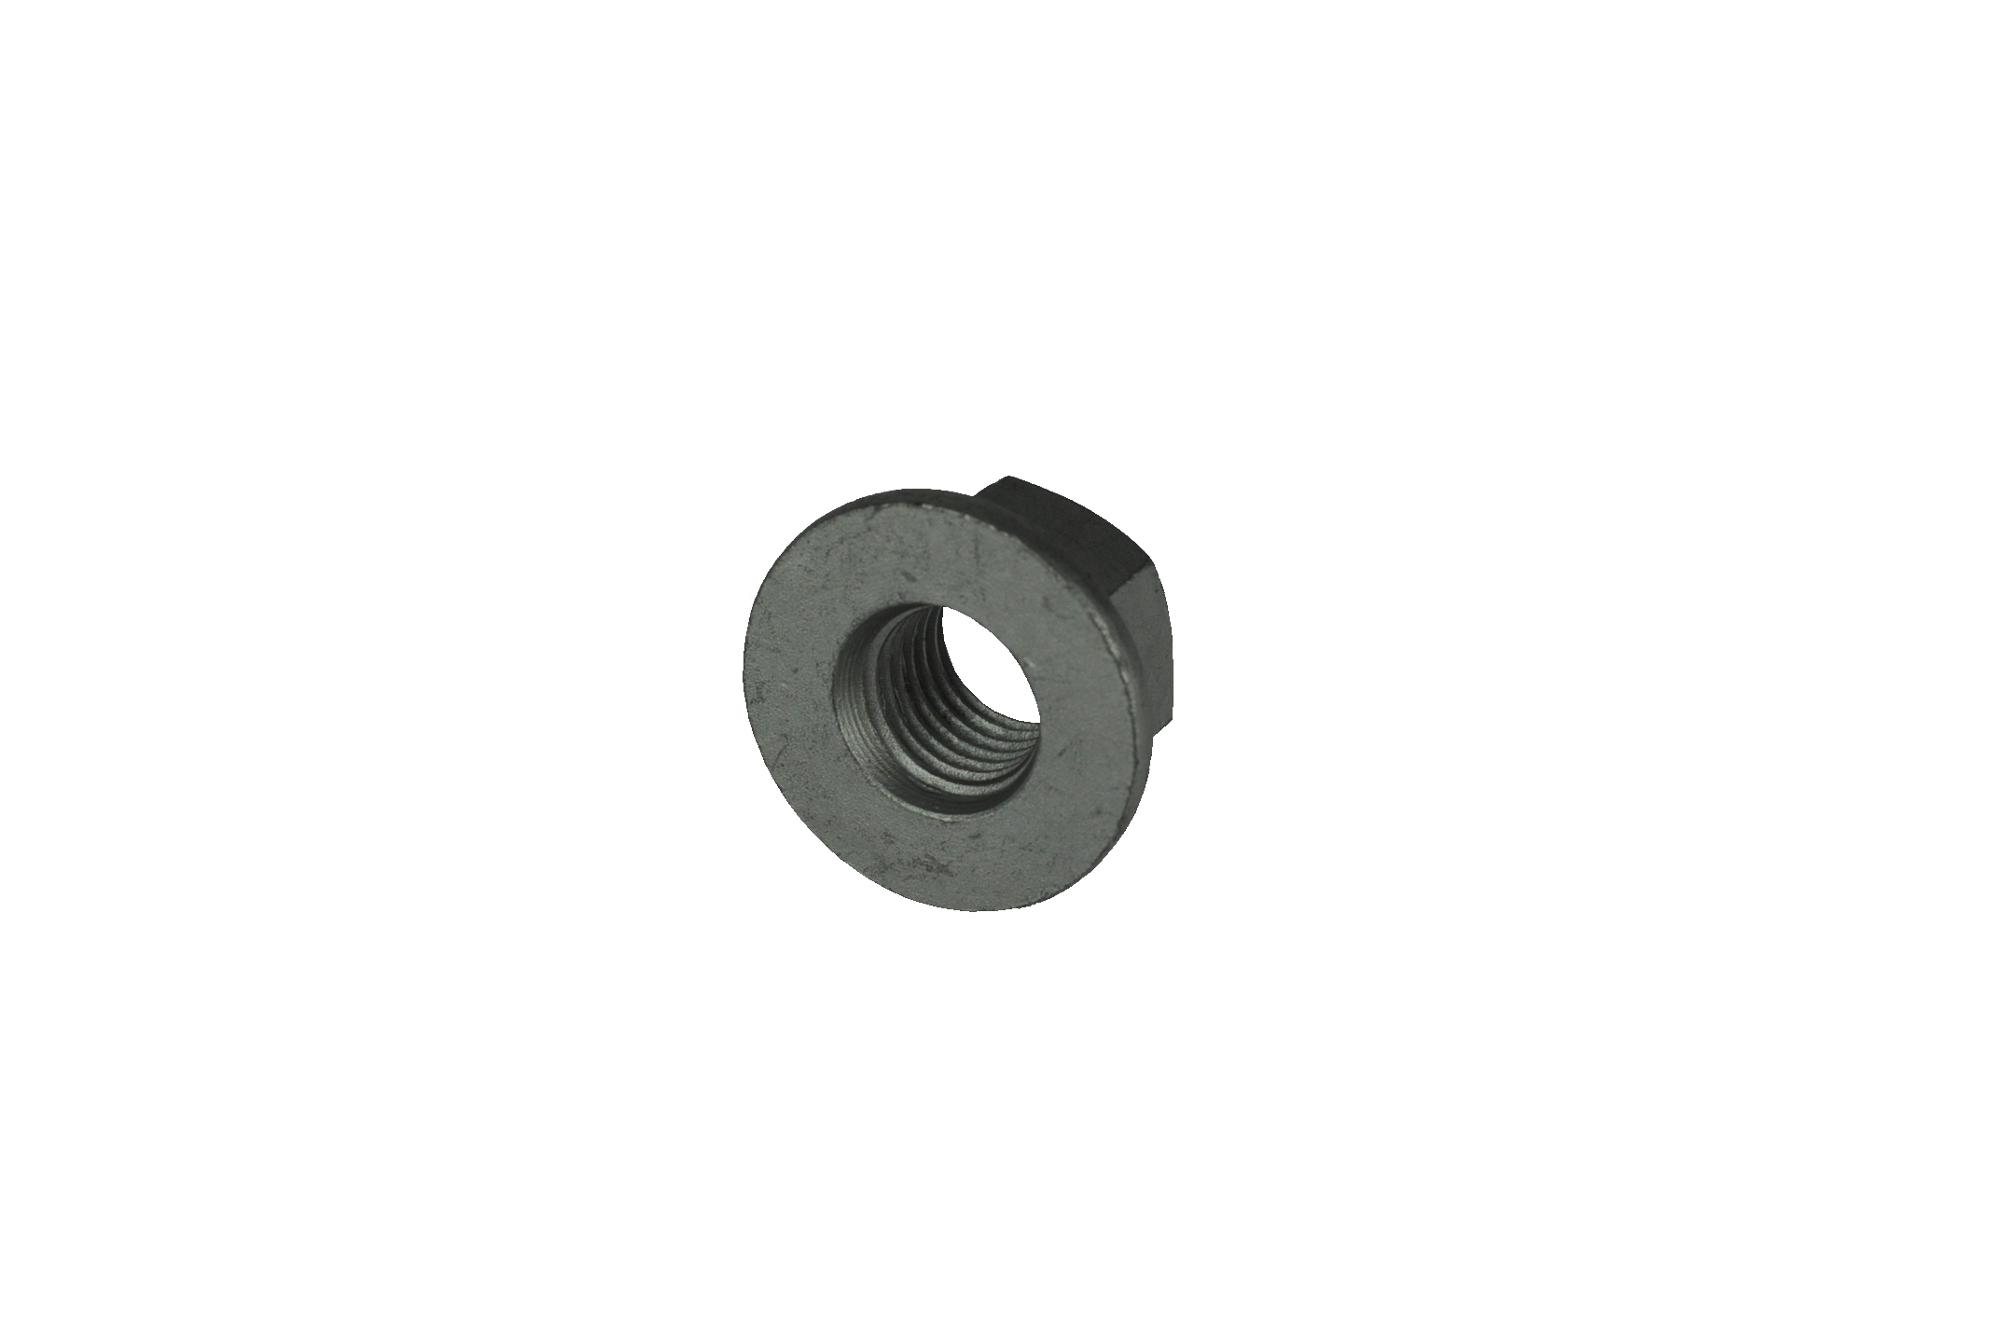 FX116056 FX116057 nut for Discovery 3/4 Range-Rover Sport 05-09/10-13